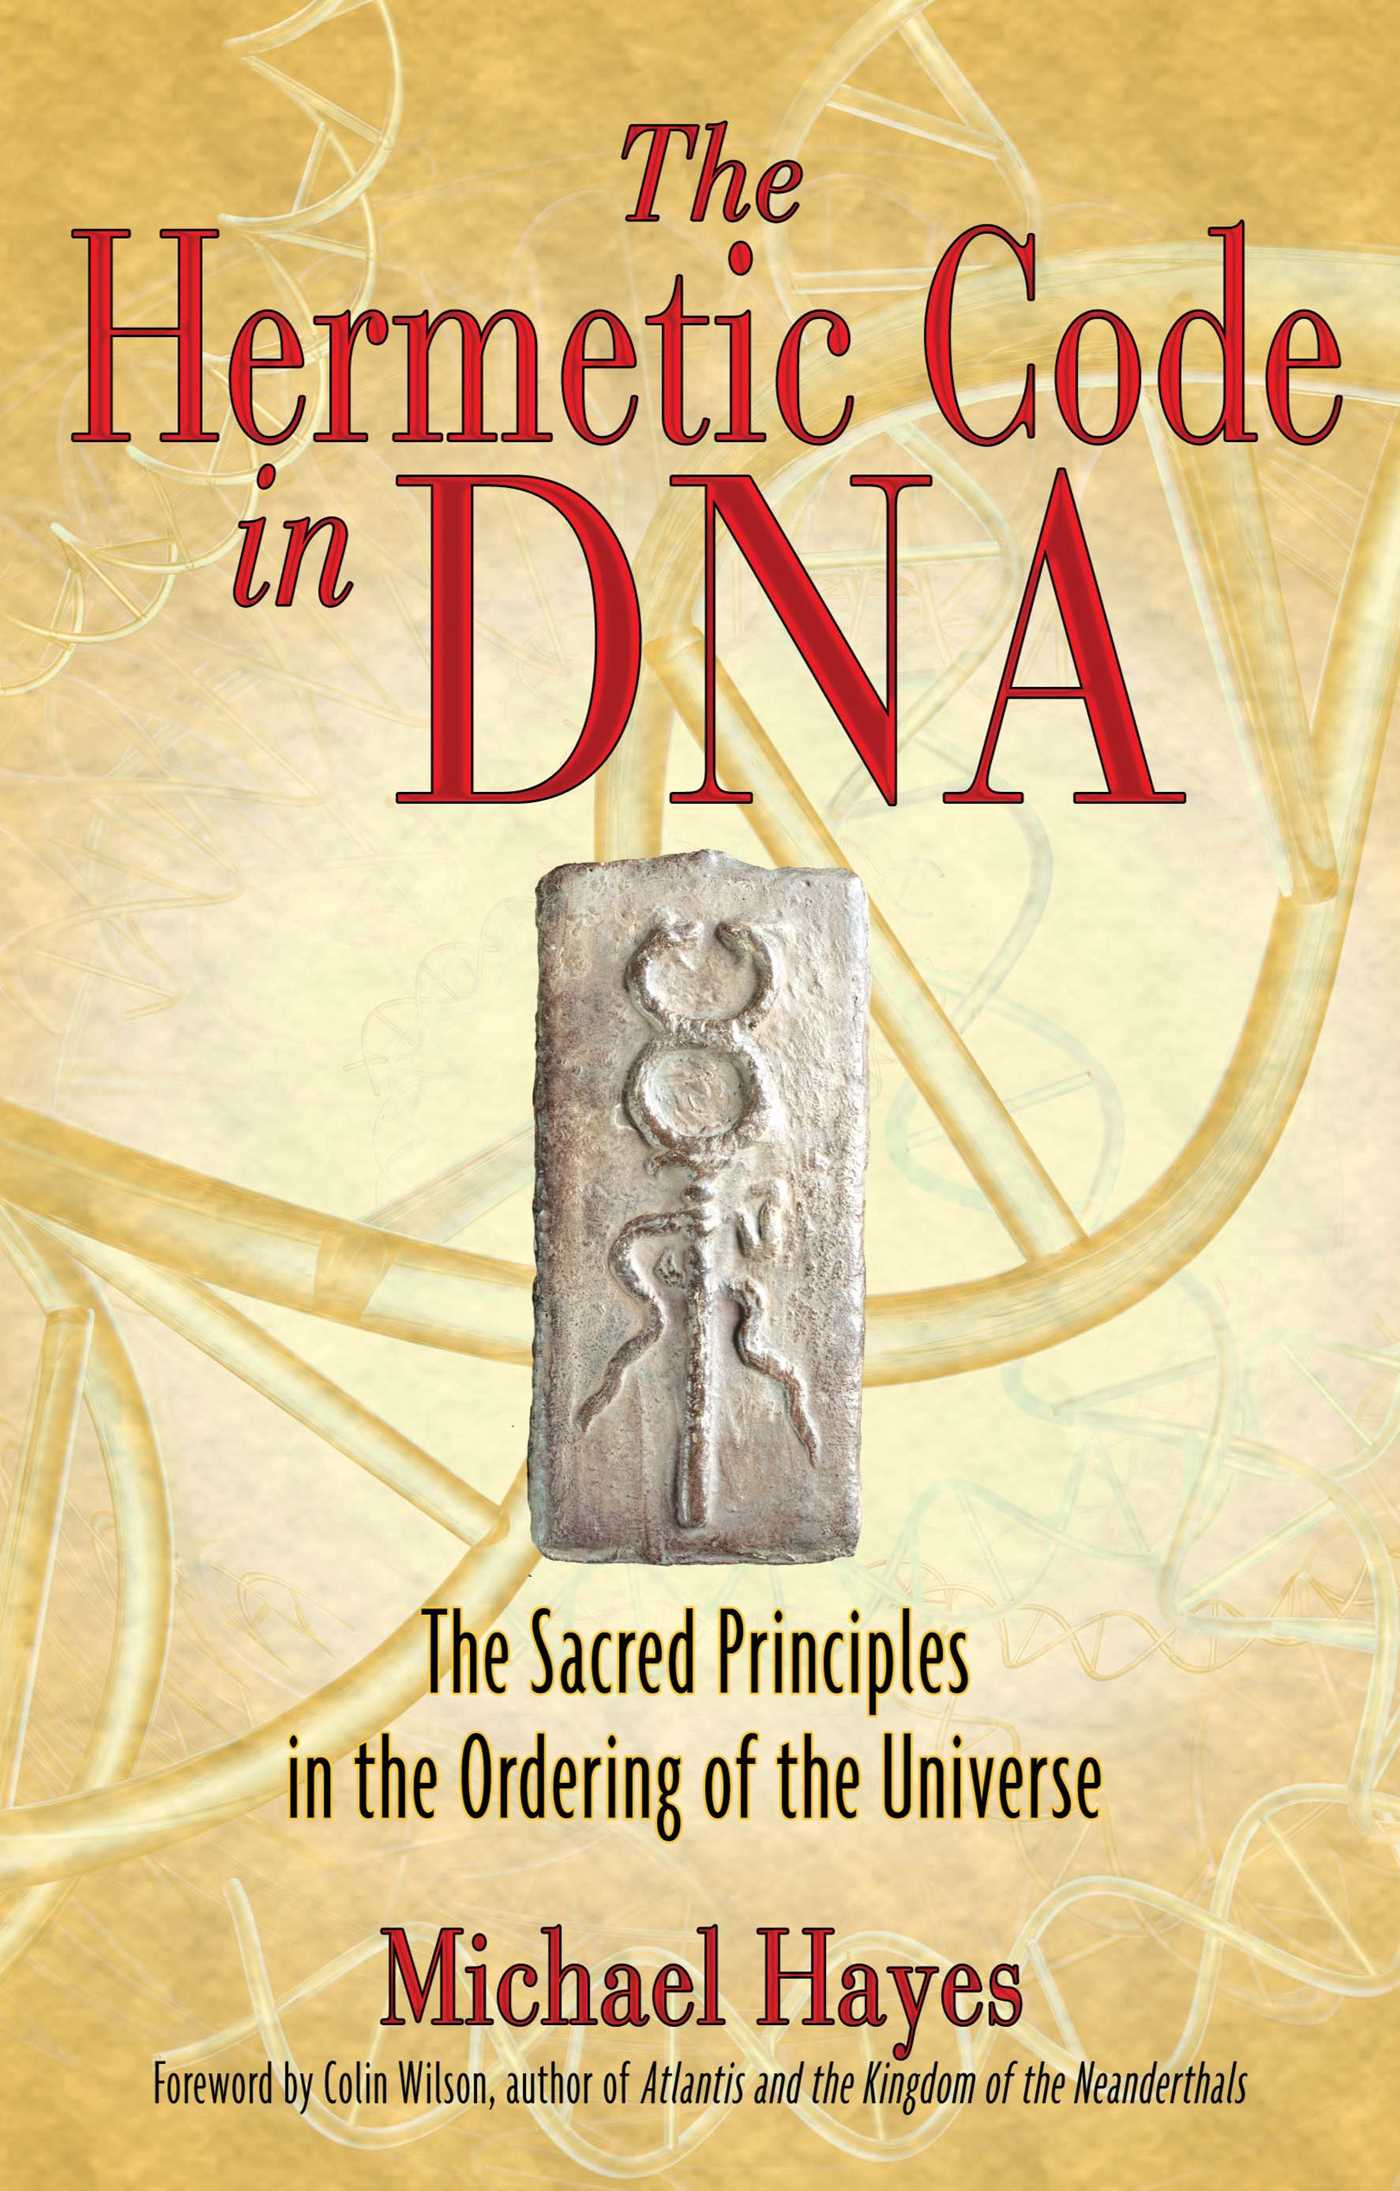 The-hermetic-code-in-dna-9781594772184_hr